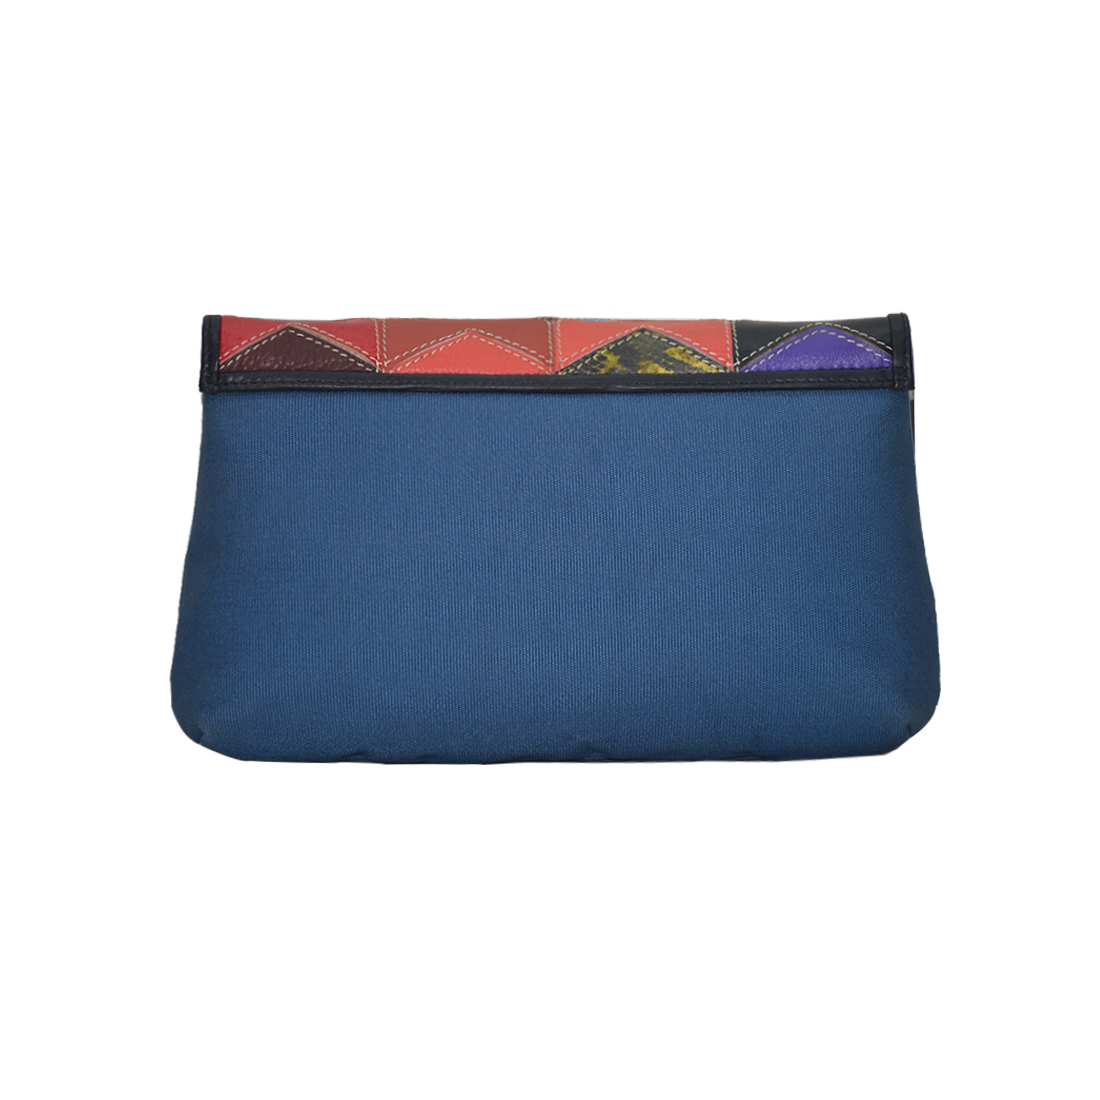 Canvas Leather Clutch Bag